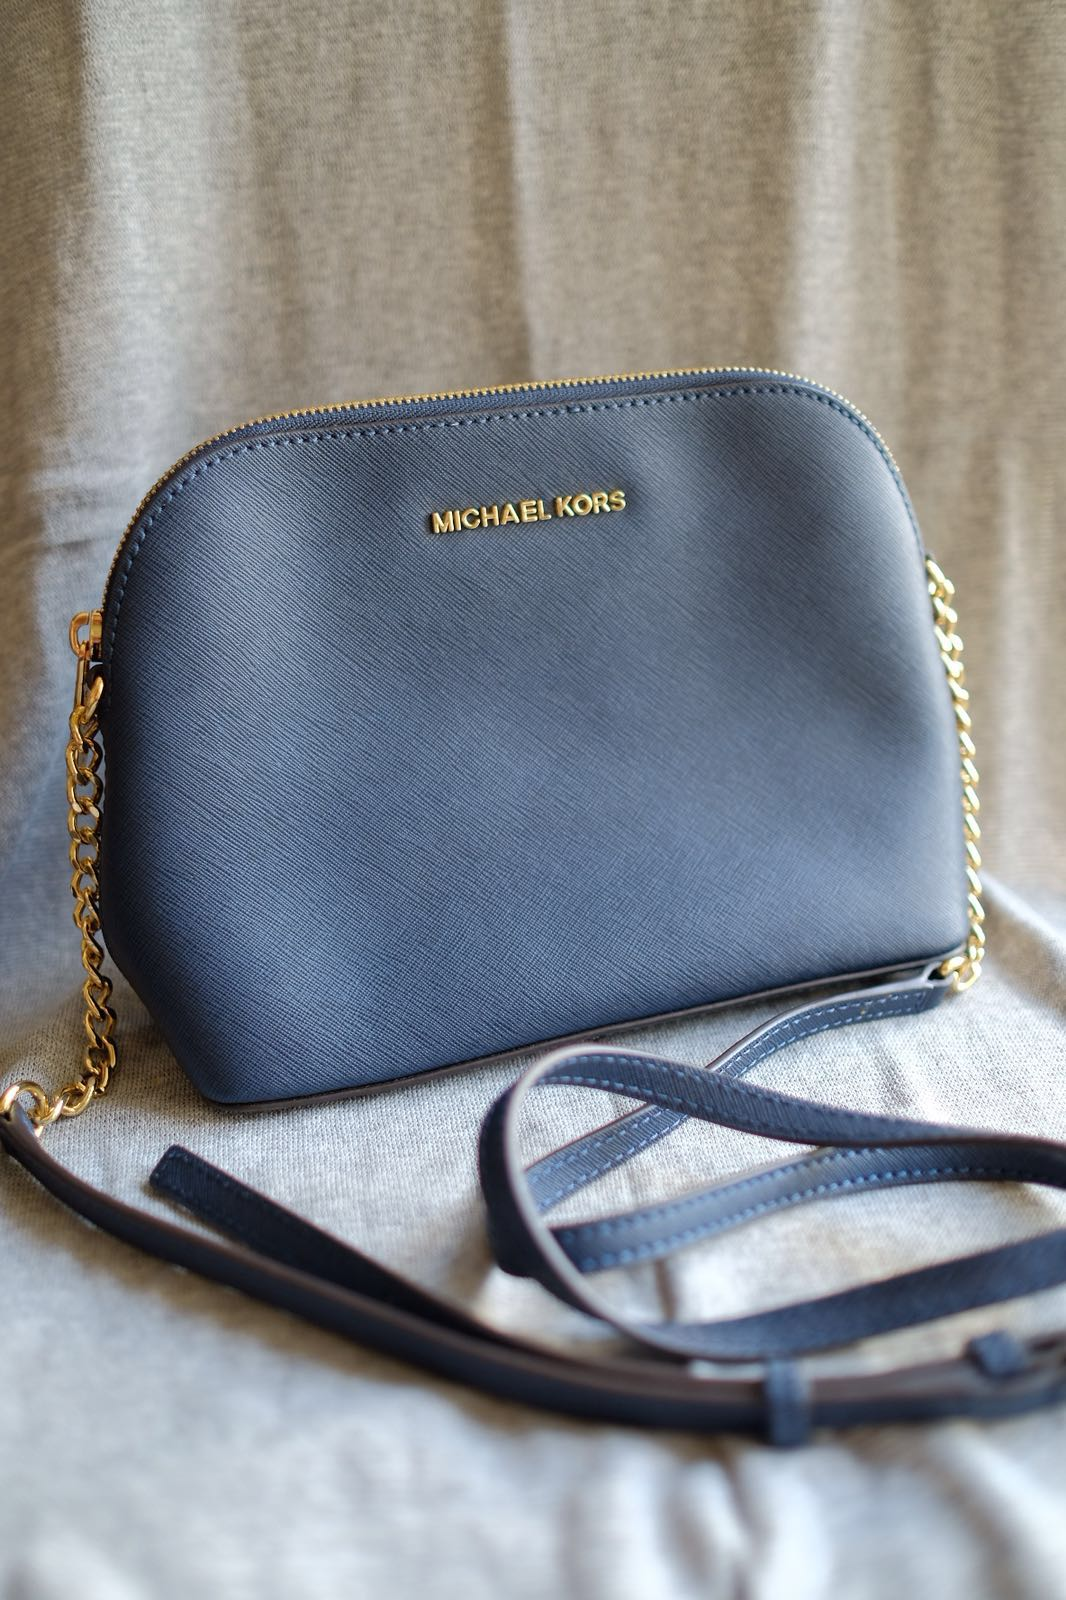 eae194e5a4a9 100% Authentic 99% New Michael Kors Cindy Large Dome Crossbody Navy ...